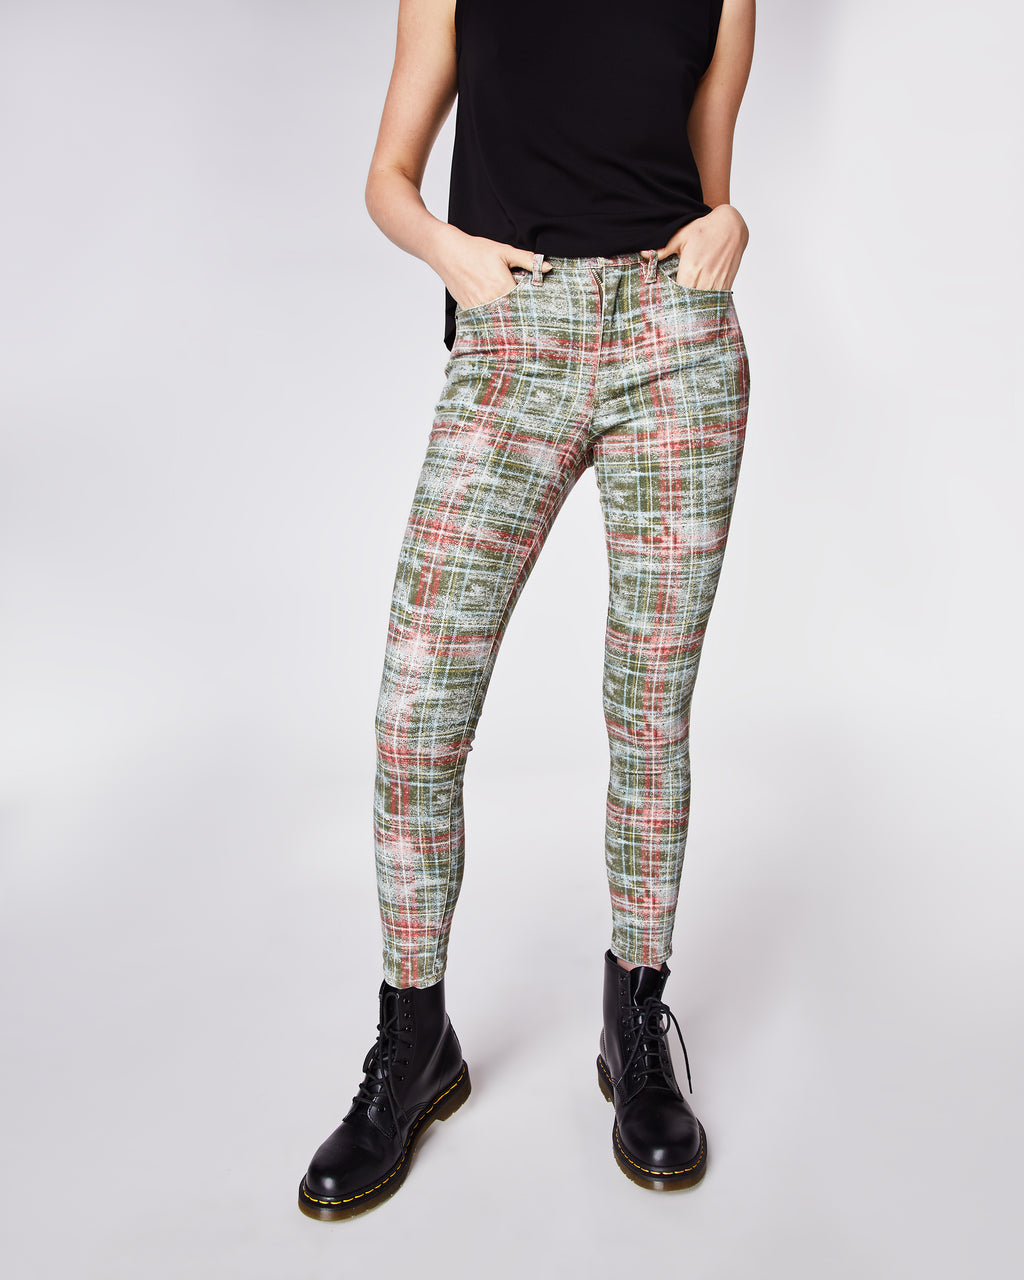 a7b910b51bde0 AS10176 - WEATHERED PLAID JEANS - bottoms - denim - In a green and red  plaid ...